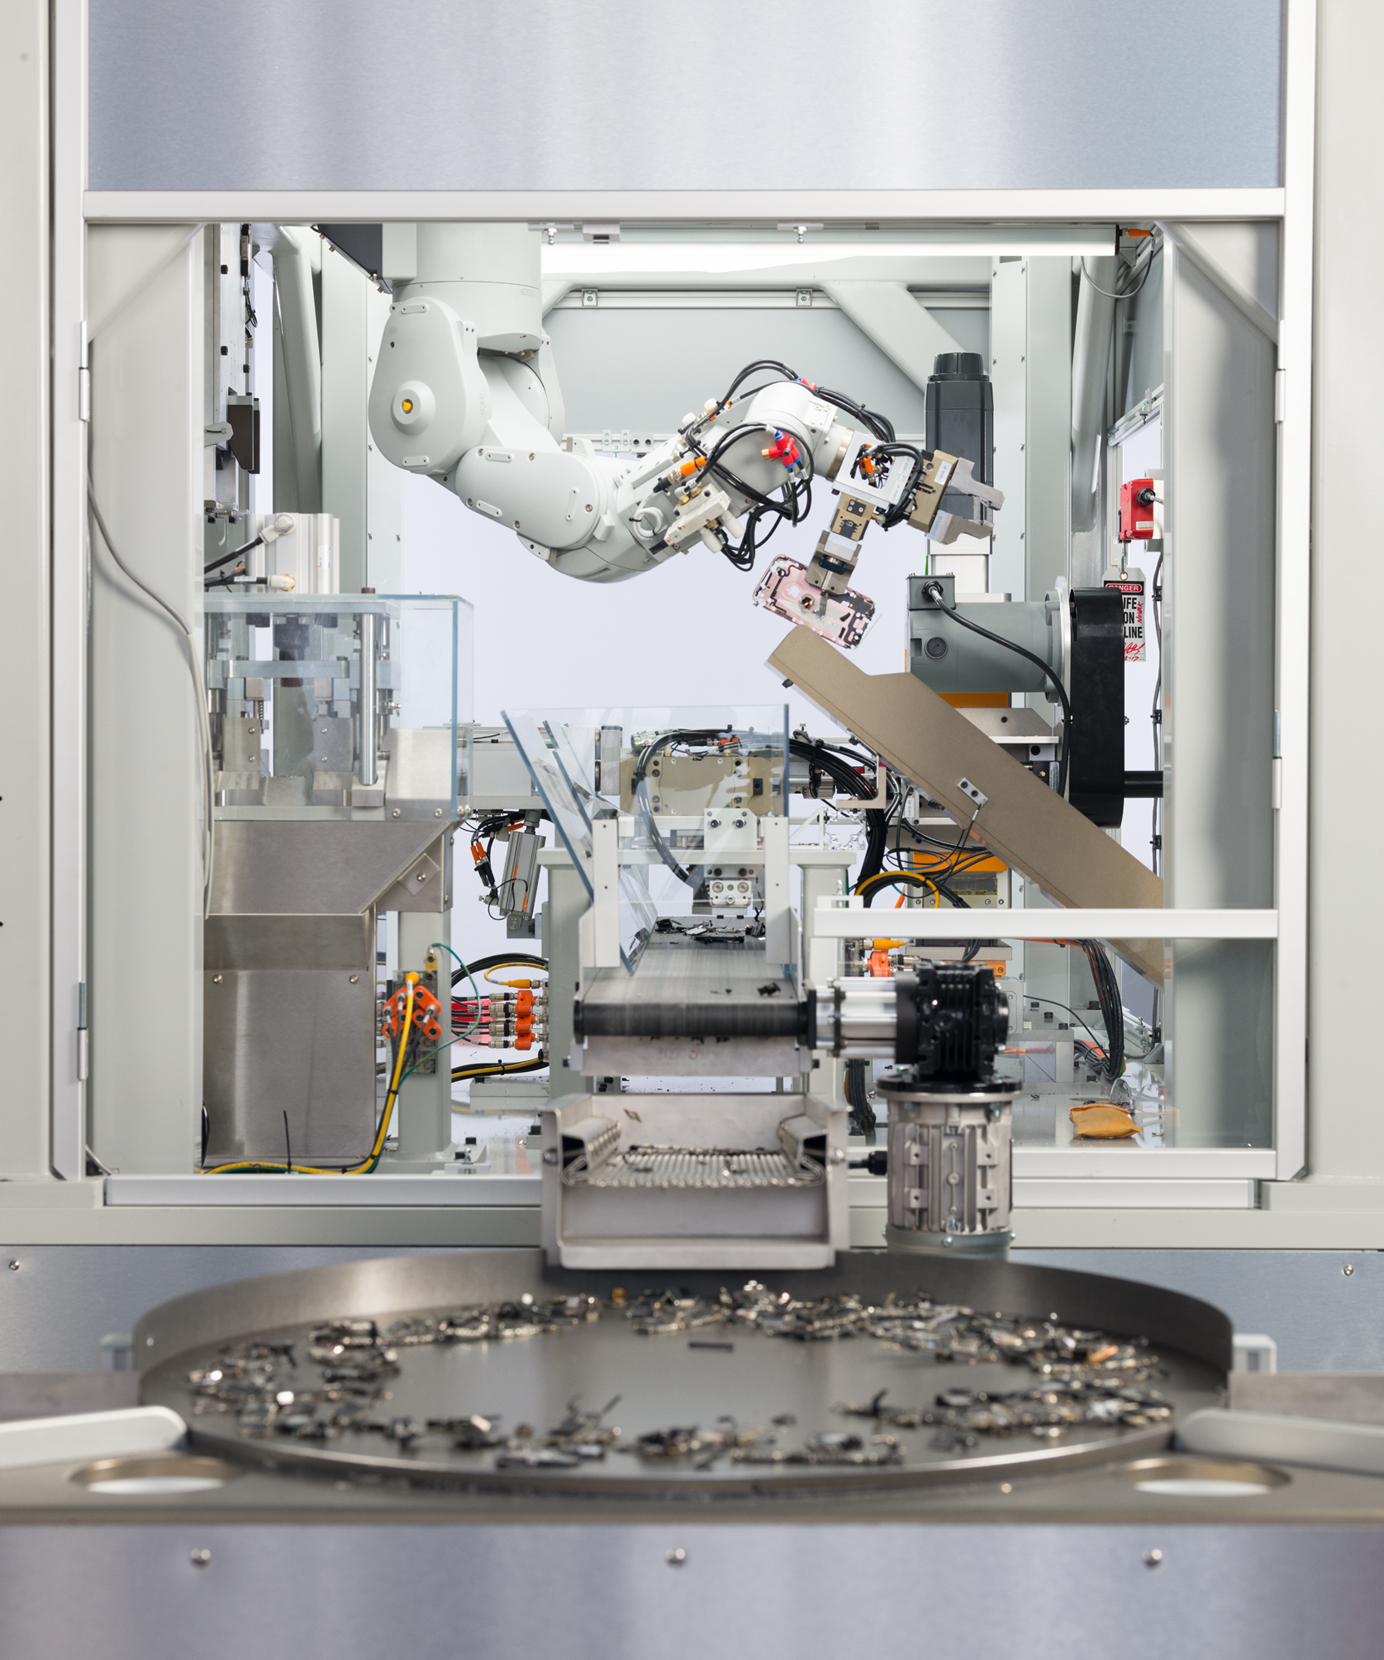 Apple Boosts Recycling Efforts With 'Daisy' Robot